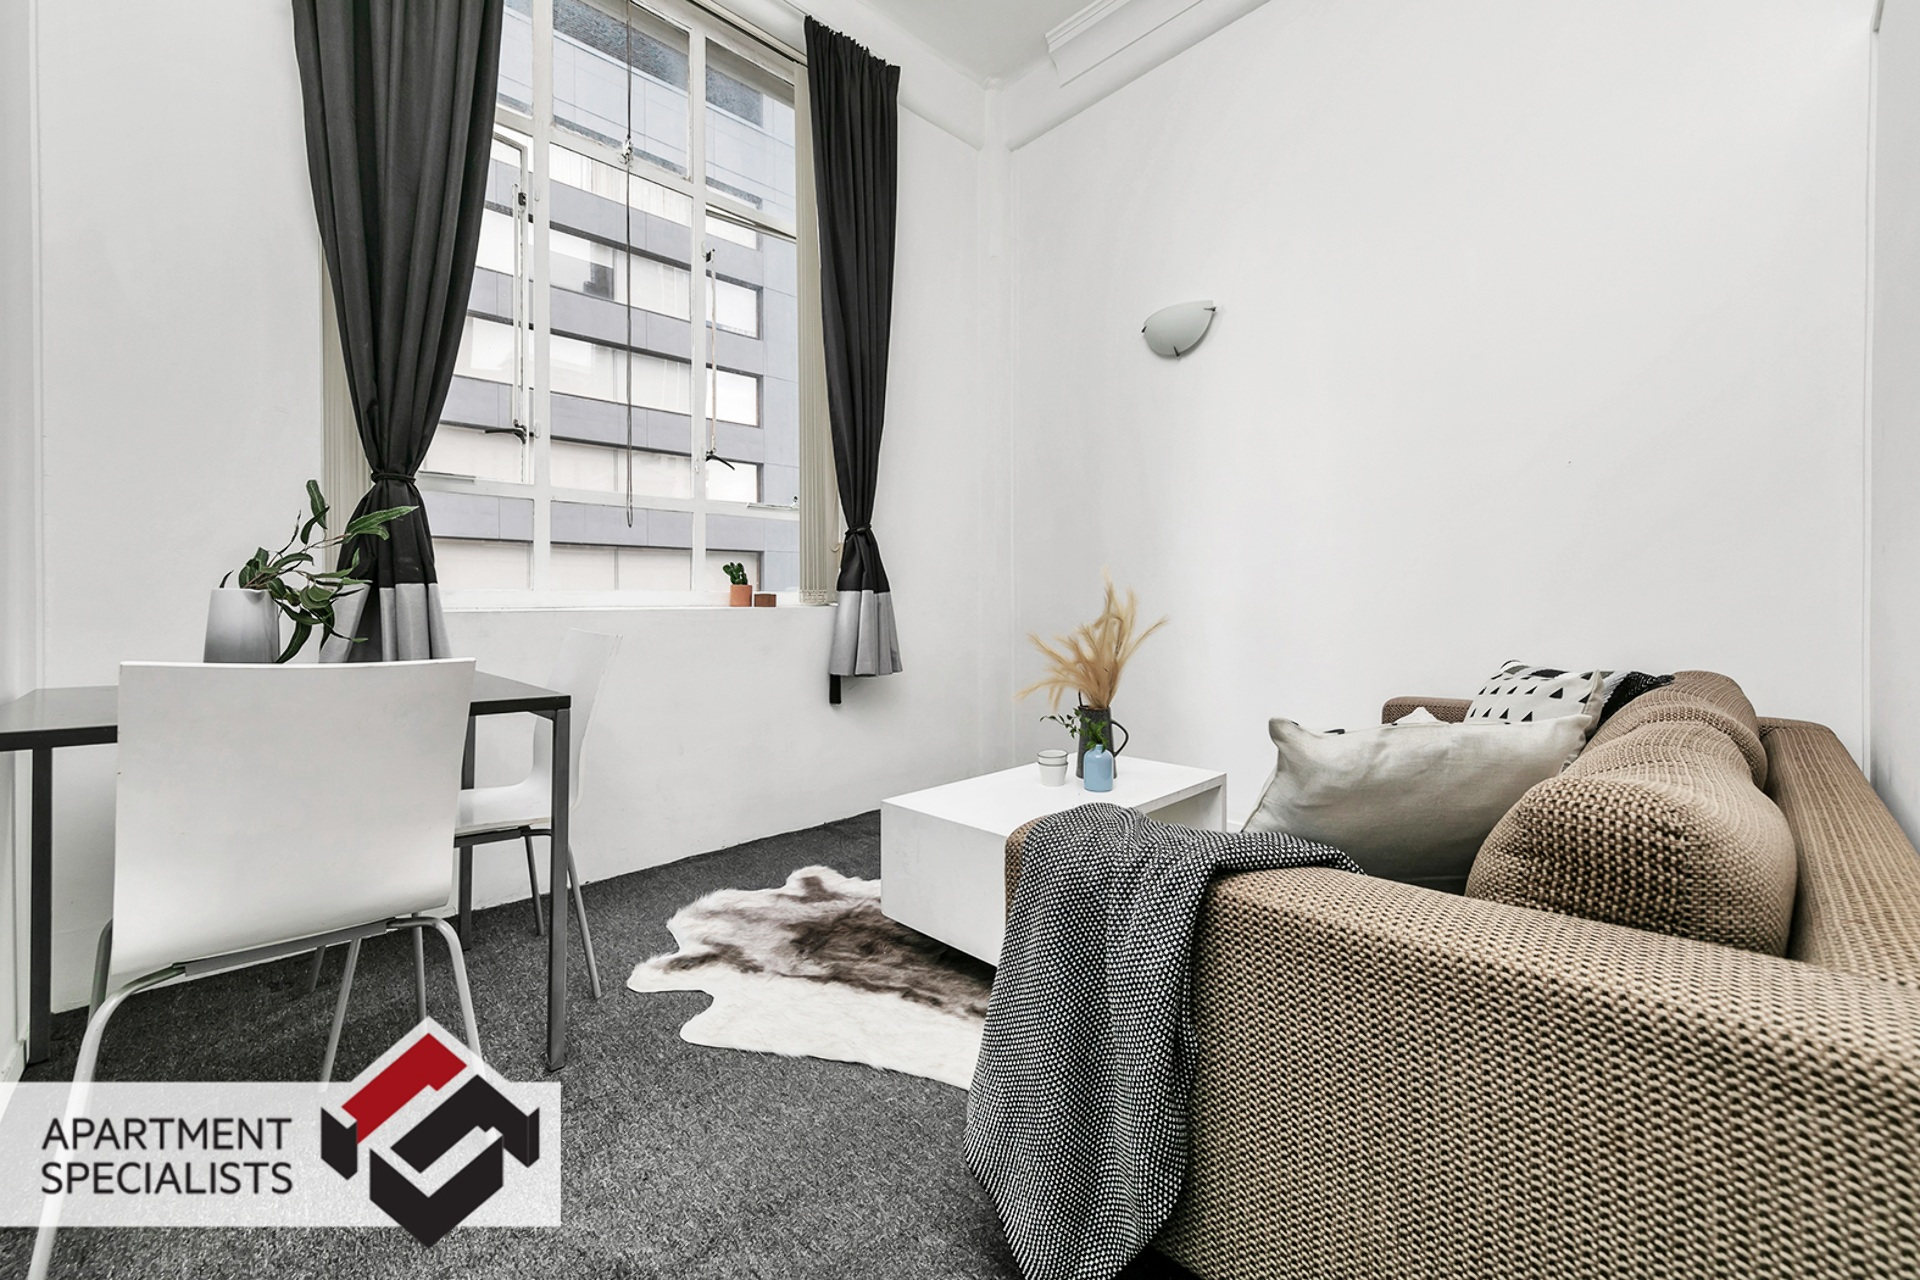 2 | 105 Queen Street, City Centre | Apartment Specialists